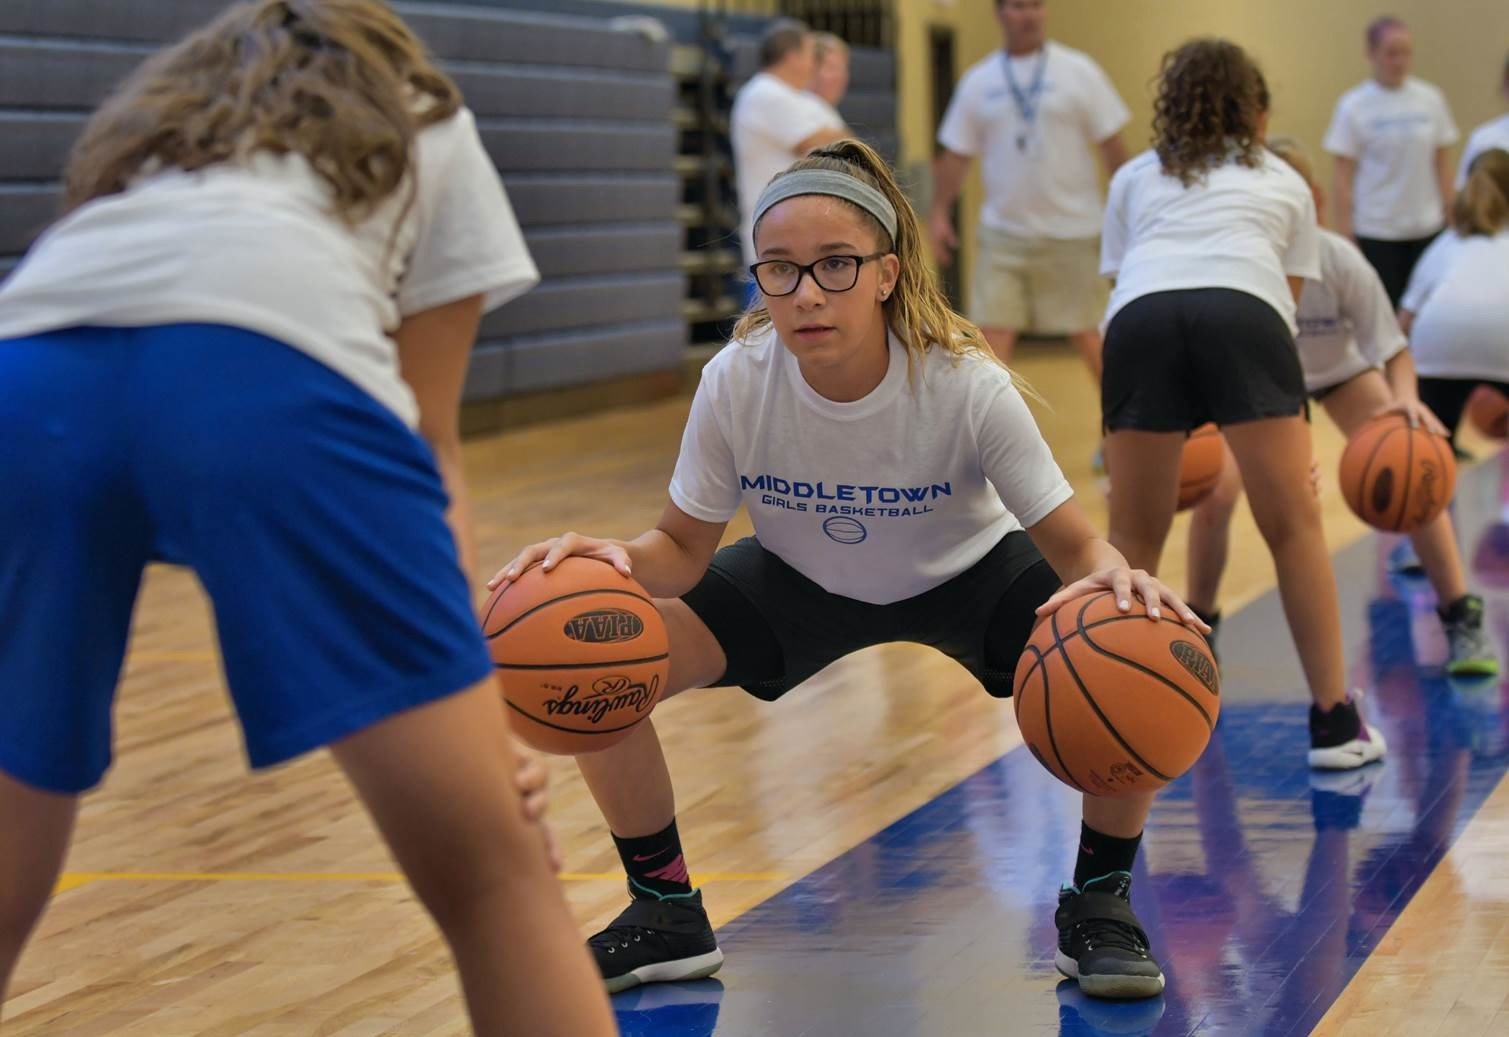 Sa'nya Togans takes part in the MAHS girls basketball clinic.